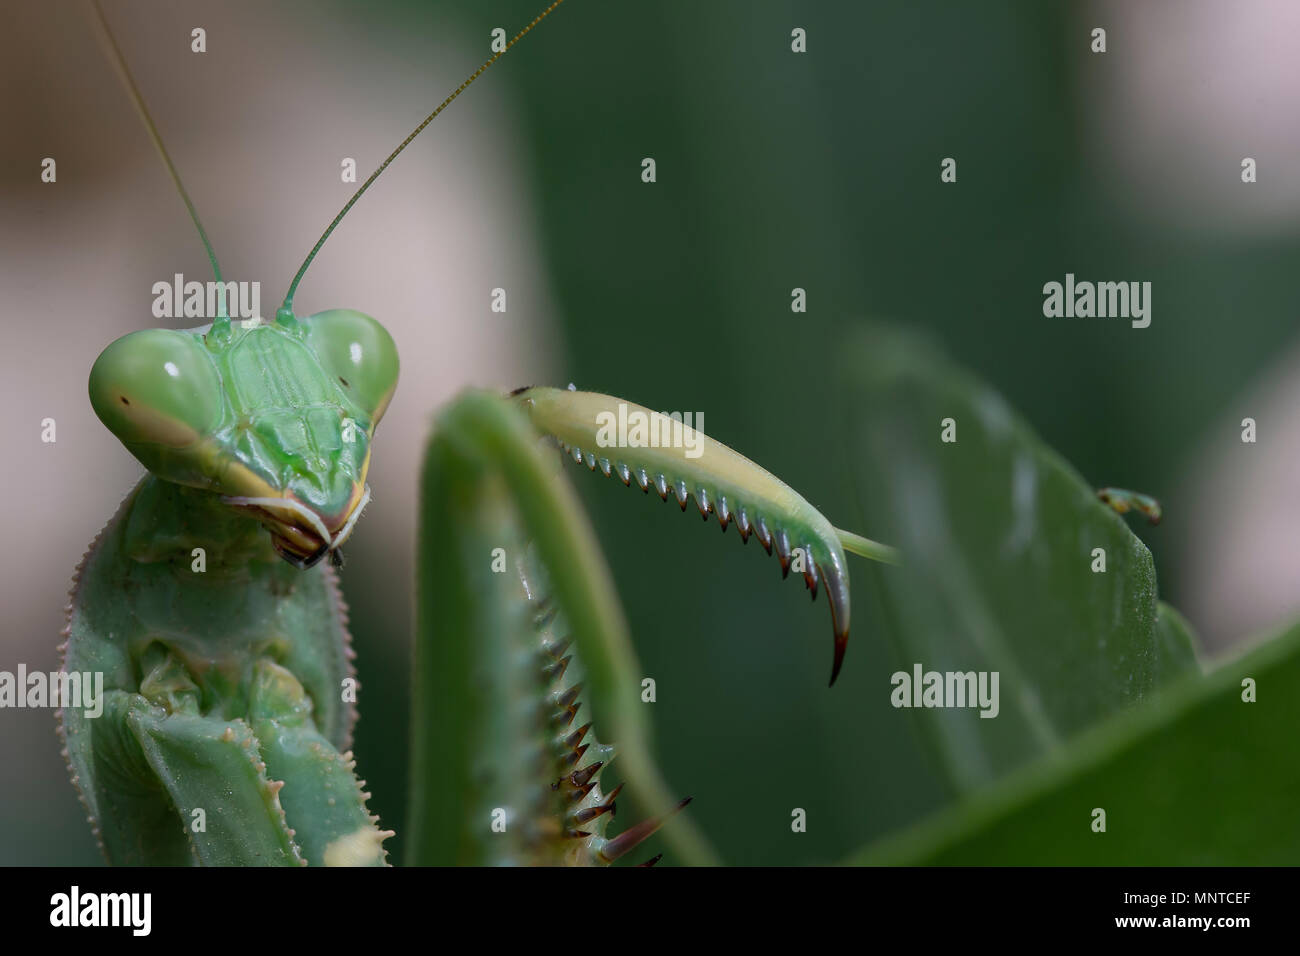 giant African mantis, Sphodromantis viridis in the wild amongst a bush in a garden in cyprus during may. - Stock Image